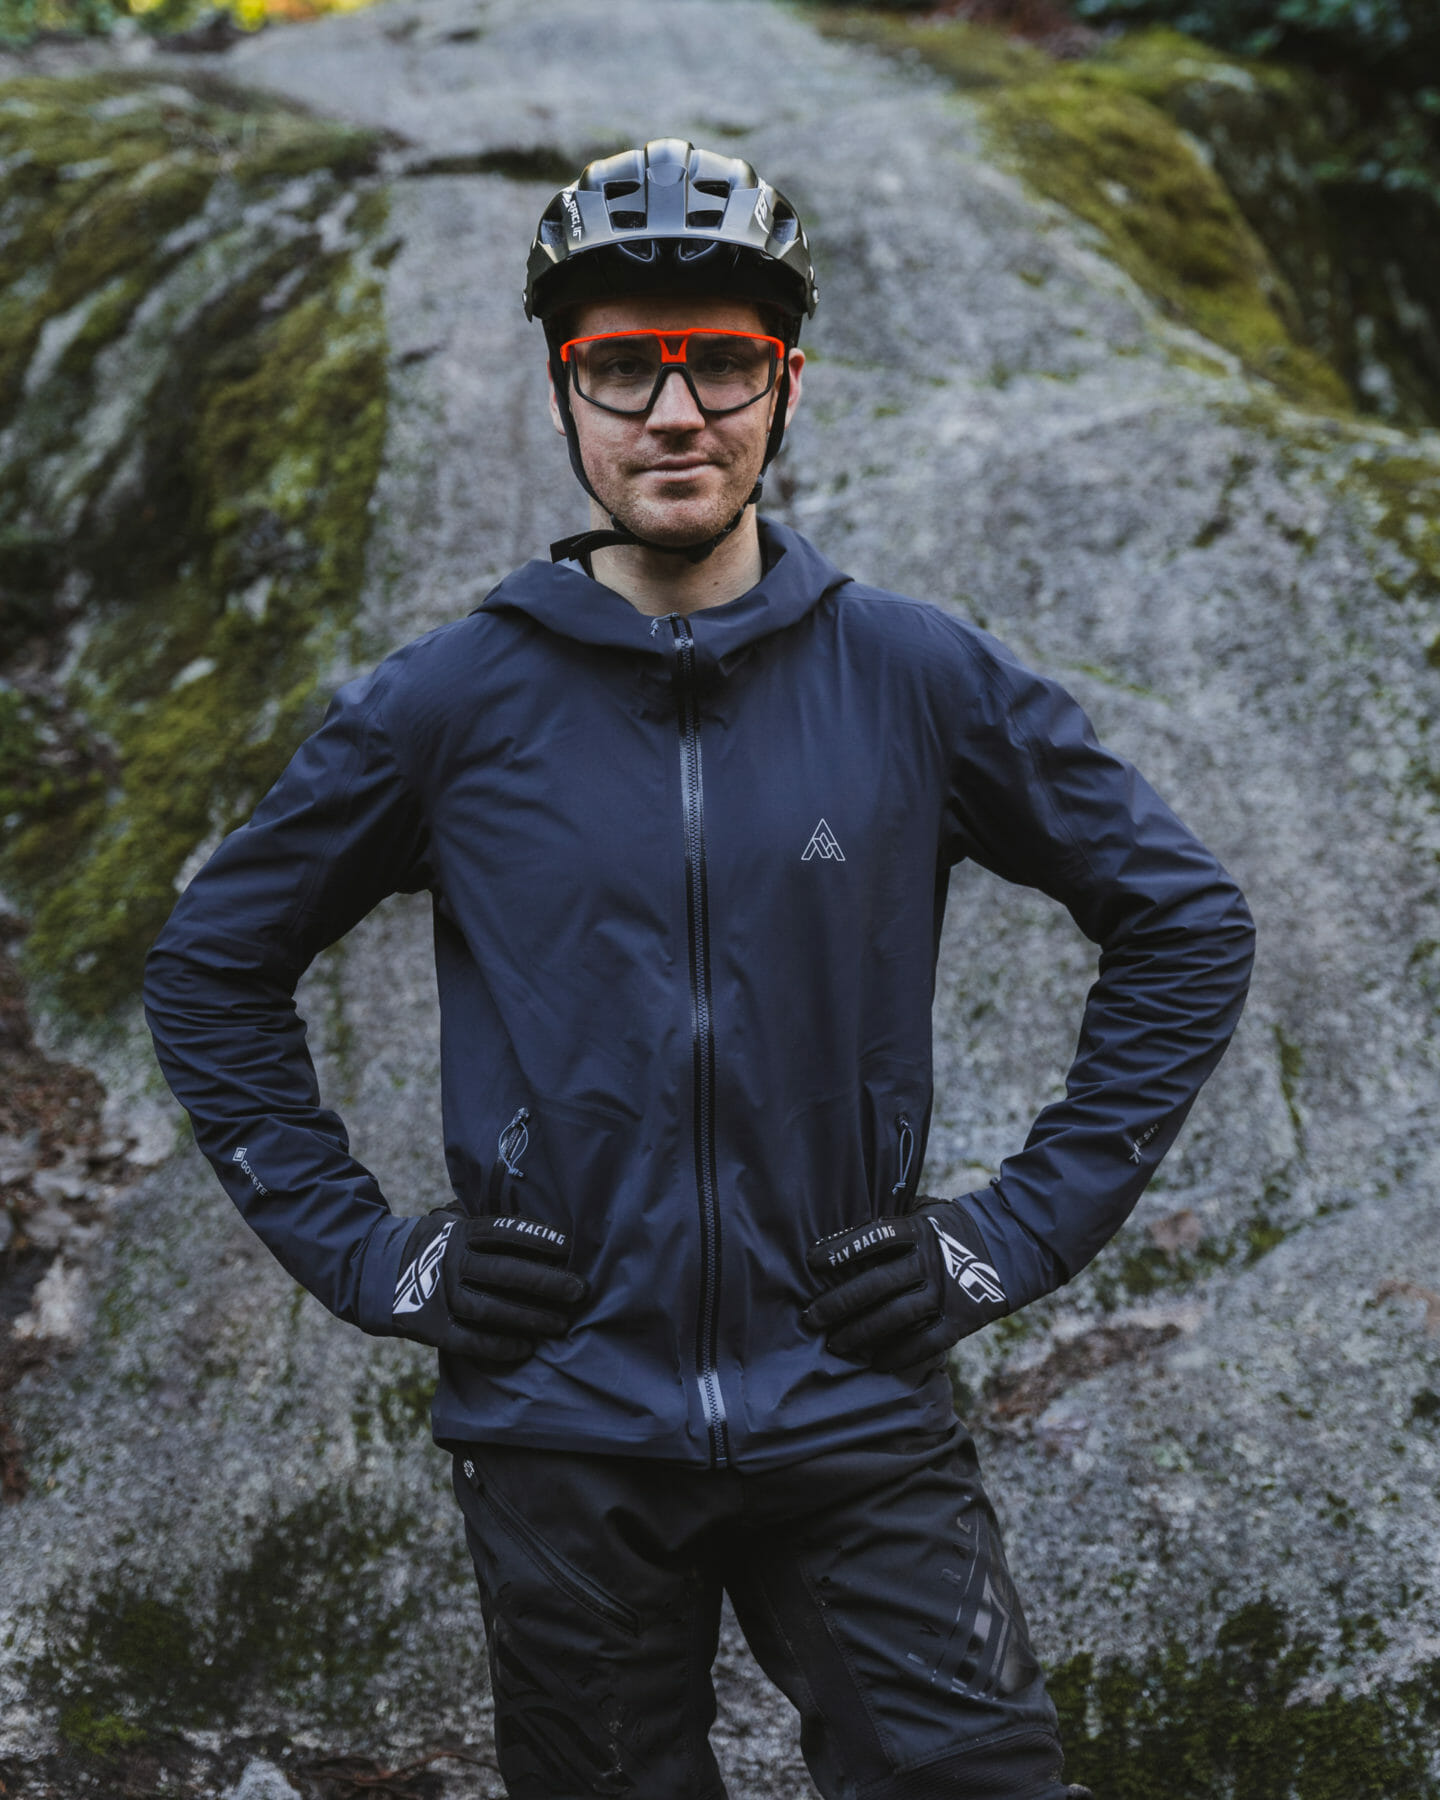 7mesh Cycling Apparel partners with Rémy Métailler